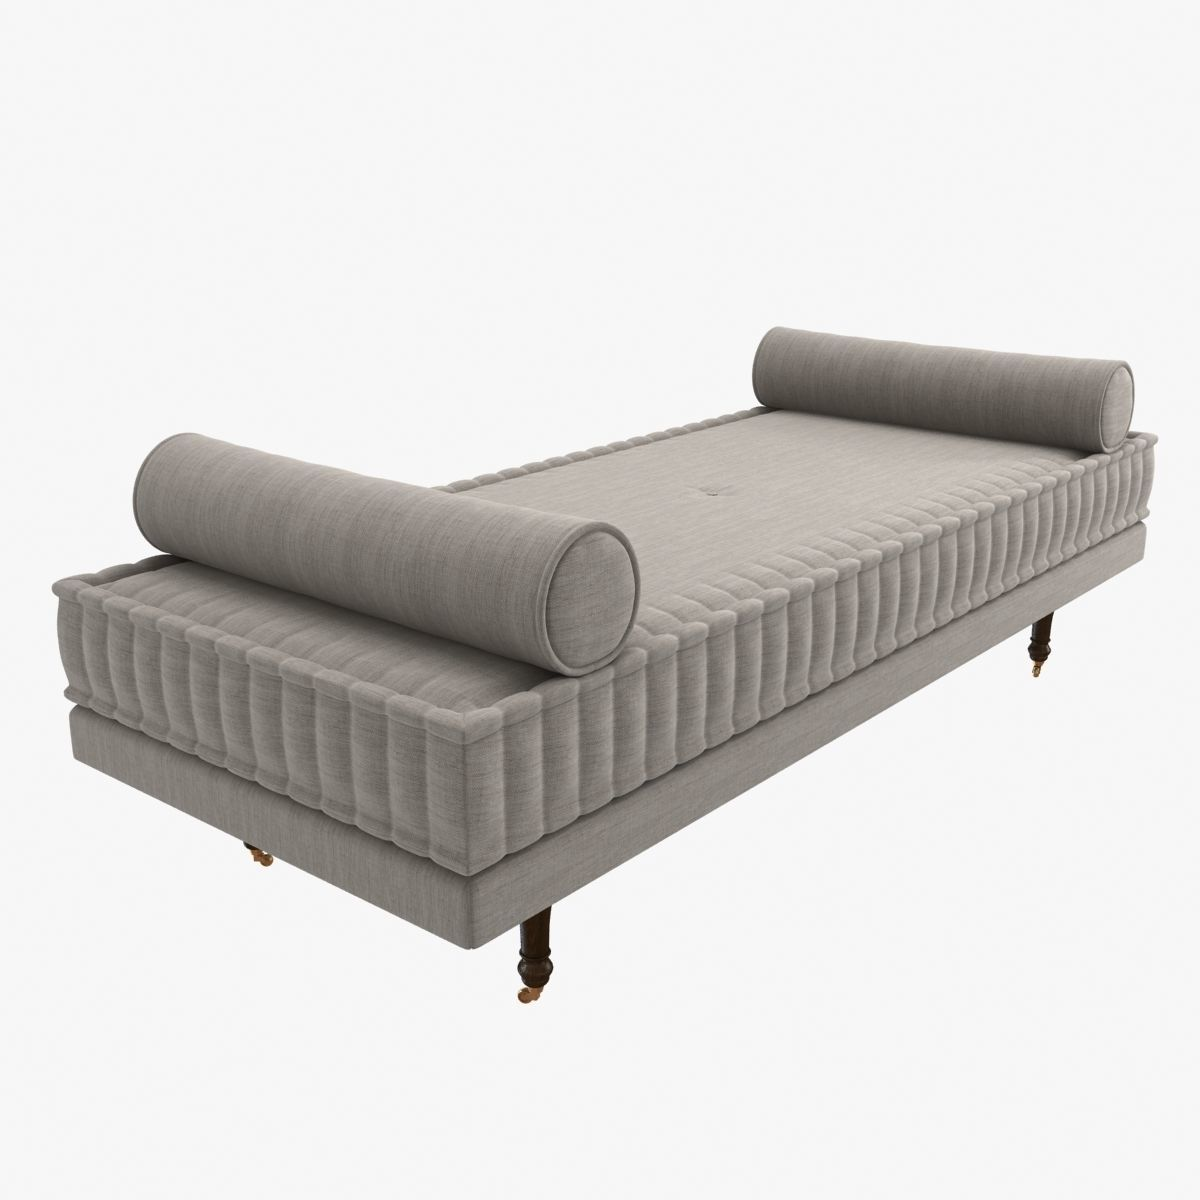 lounger sofa with pull out trundle machine wash slipcovers custom made beds manufacturer ...